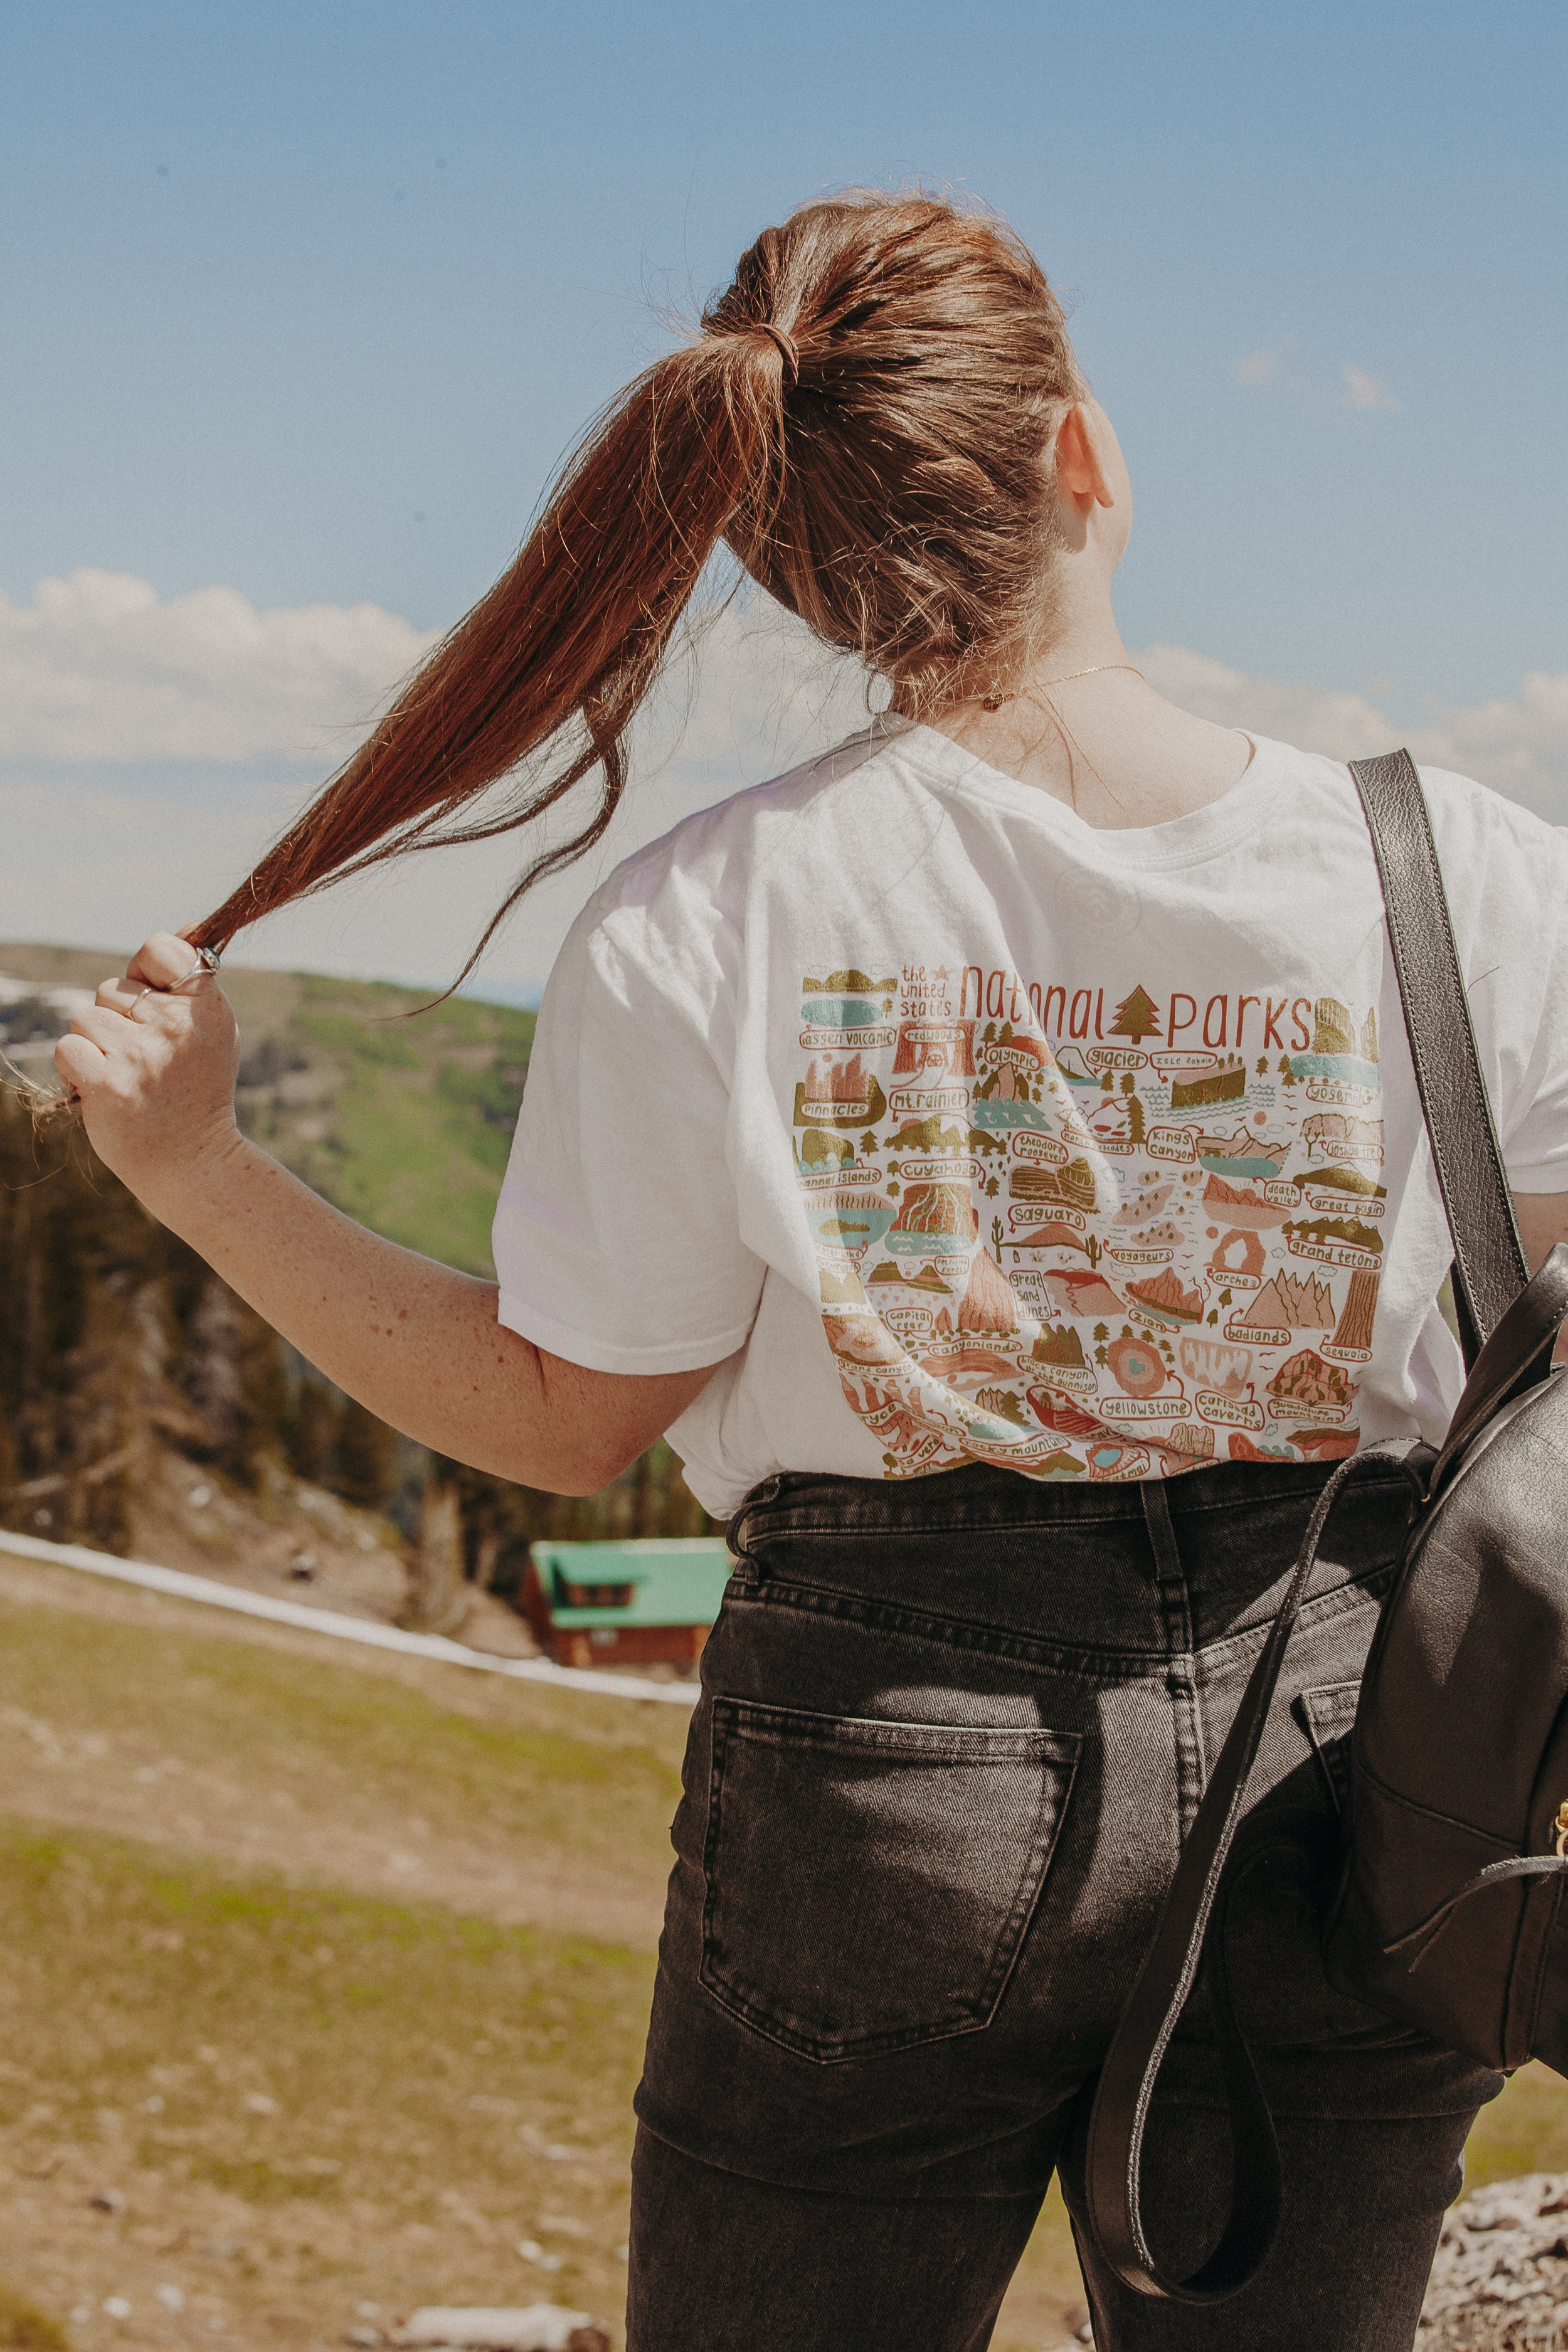 the parks project national parks t-shirt.jpg